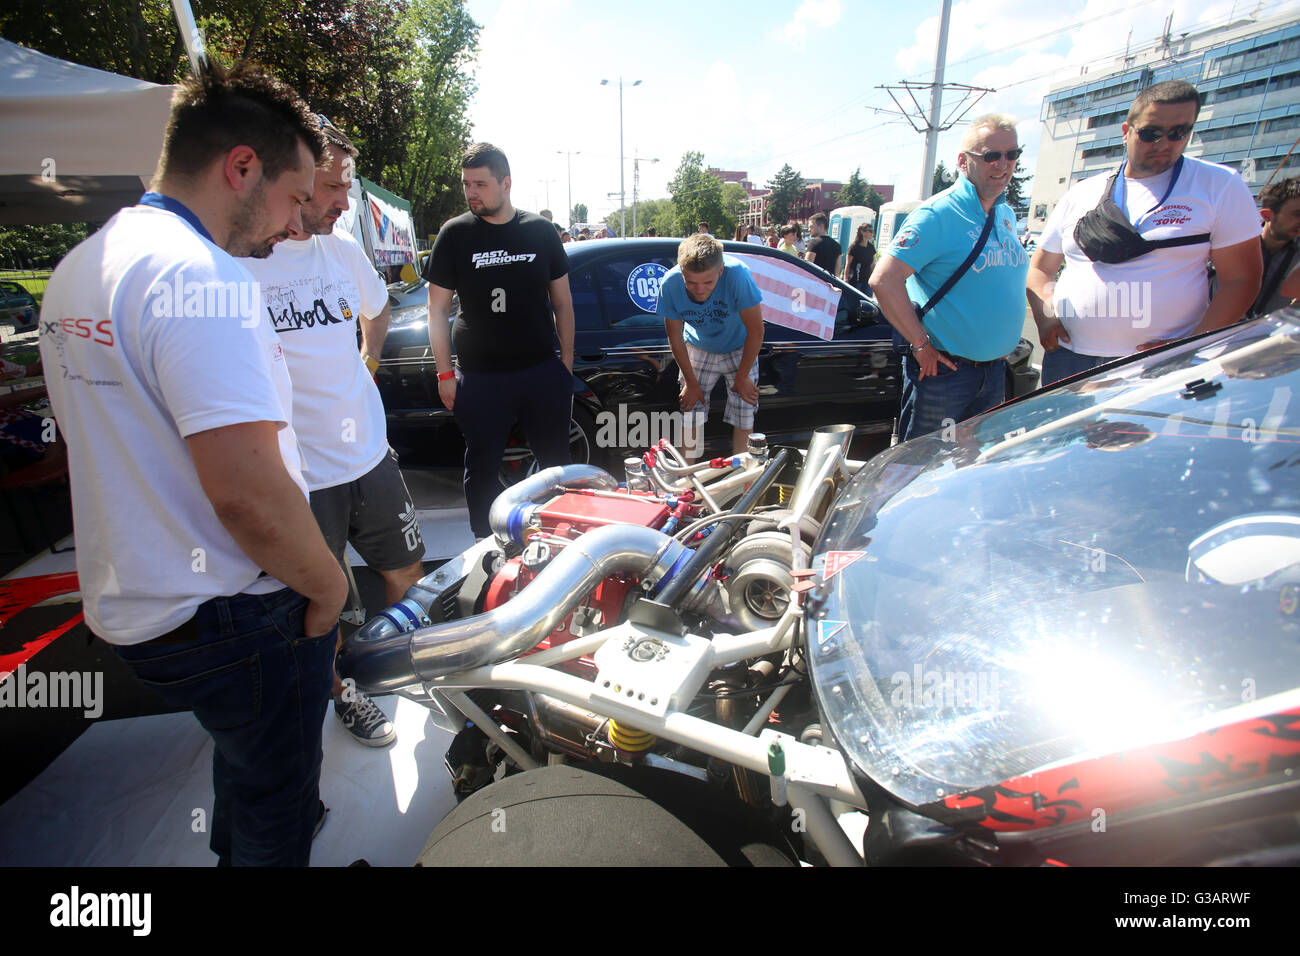 People sightseeing engine on a parked car at Fast and furious street race at Avenue Dubrovnik in Zagreb, Croatia. - Stock Image